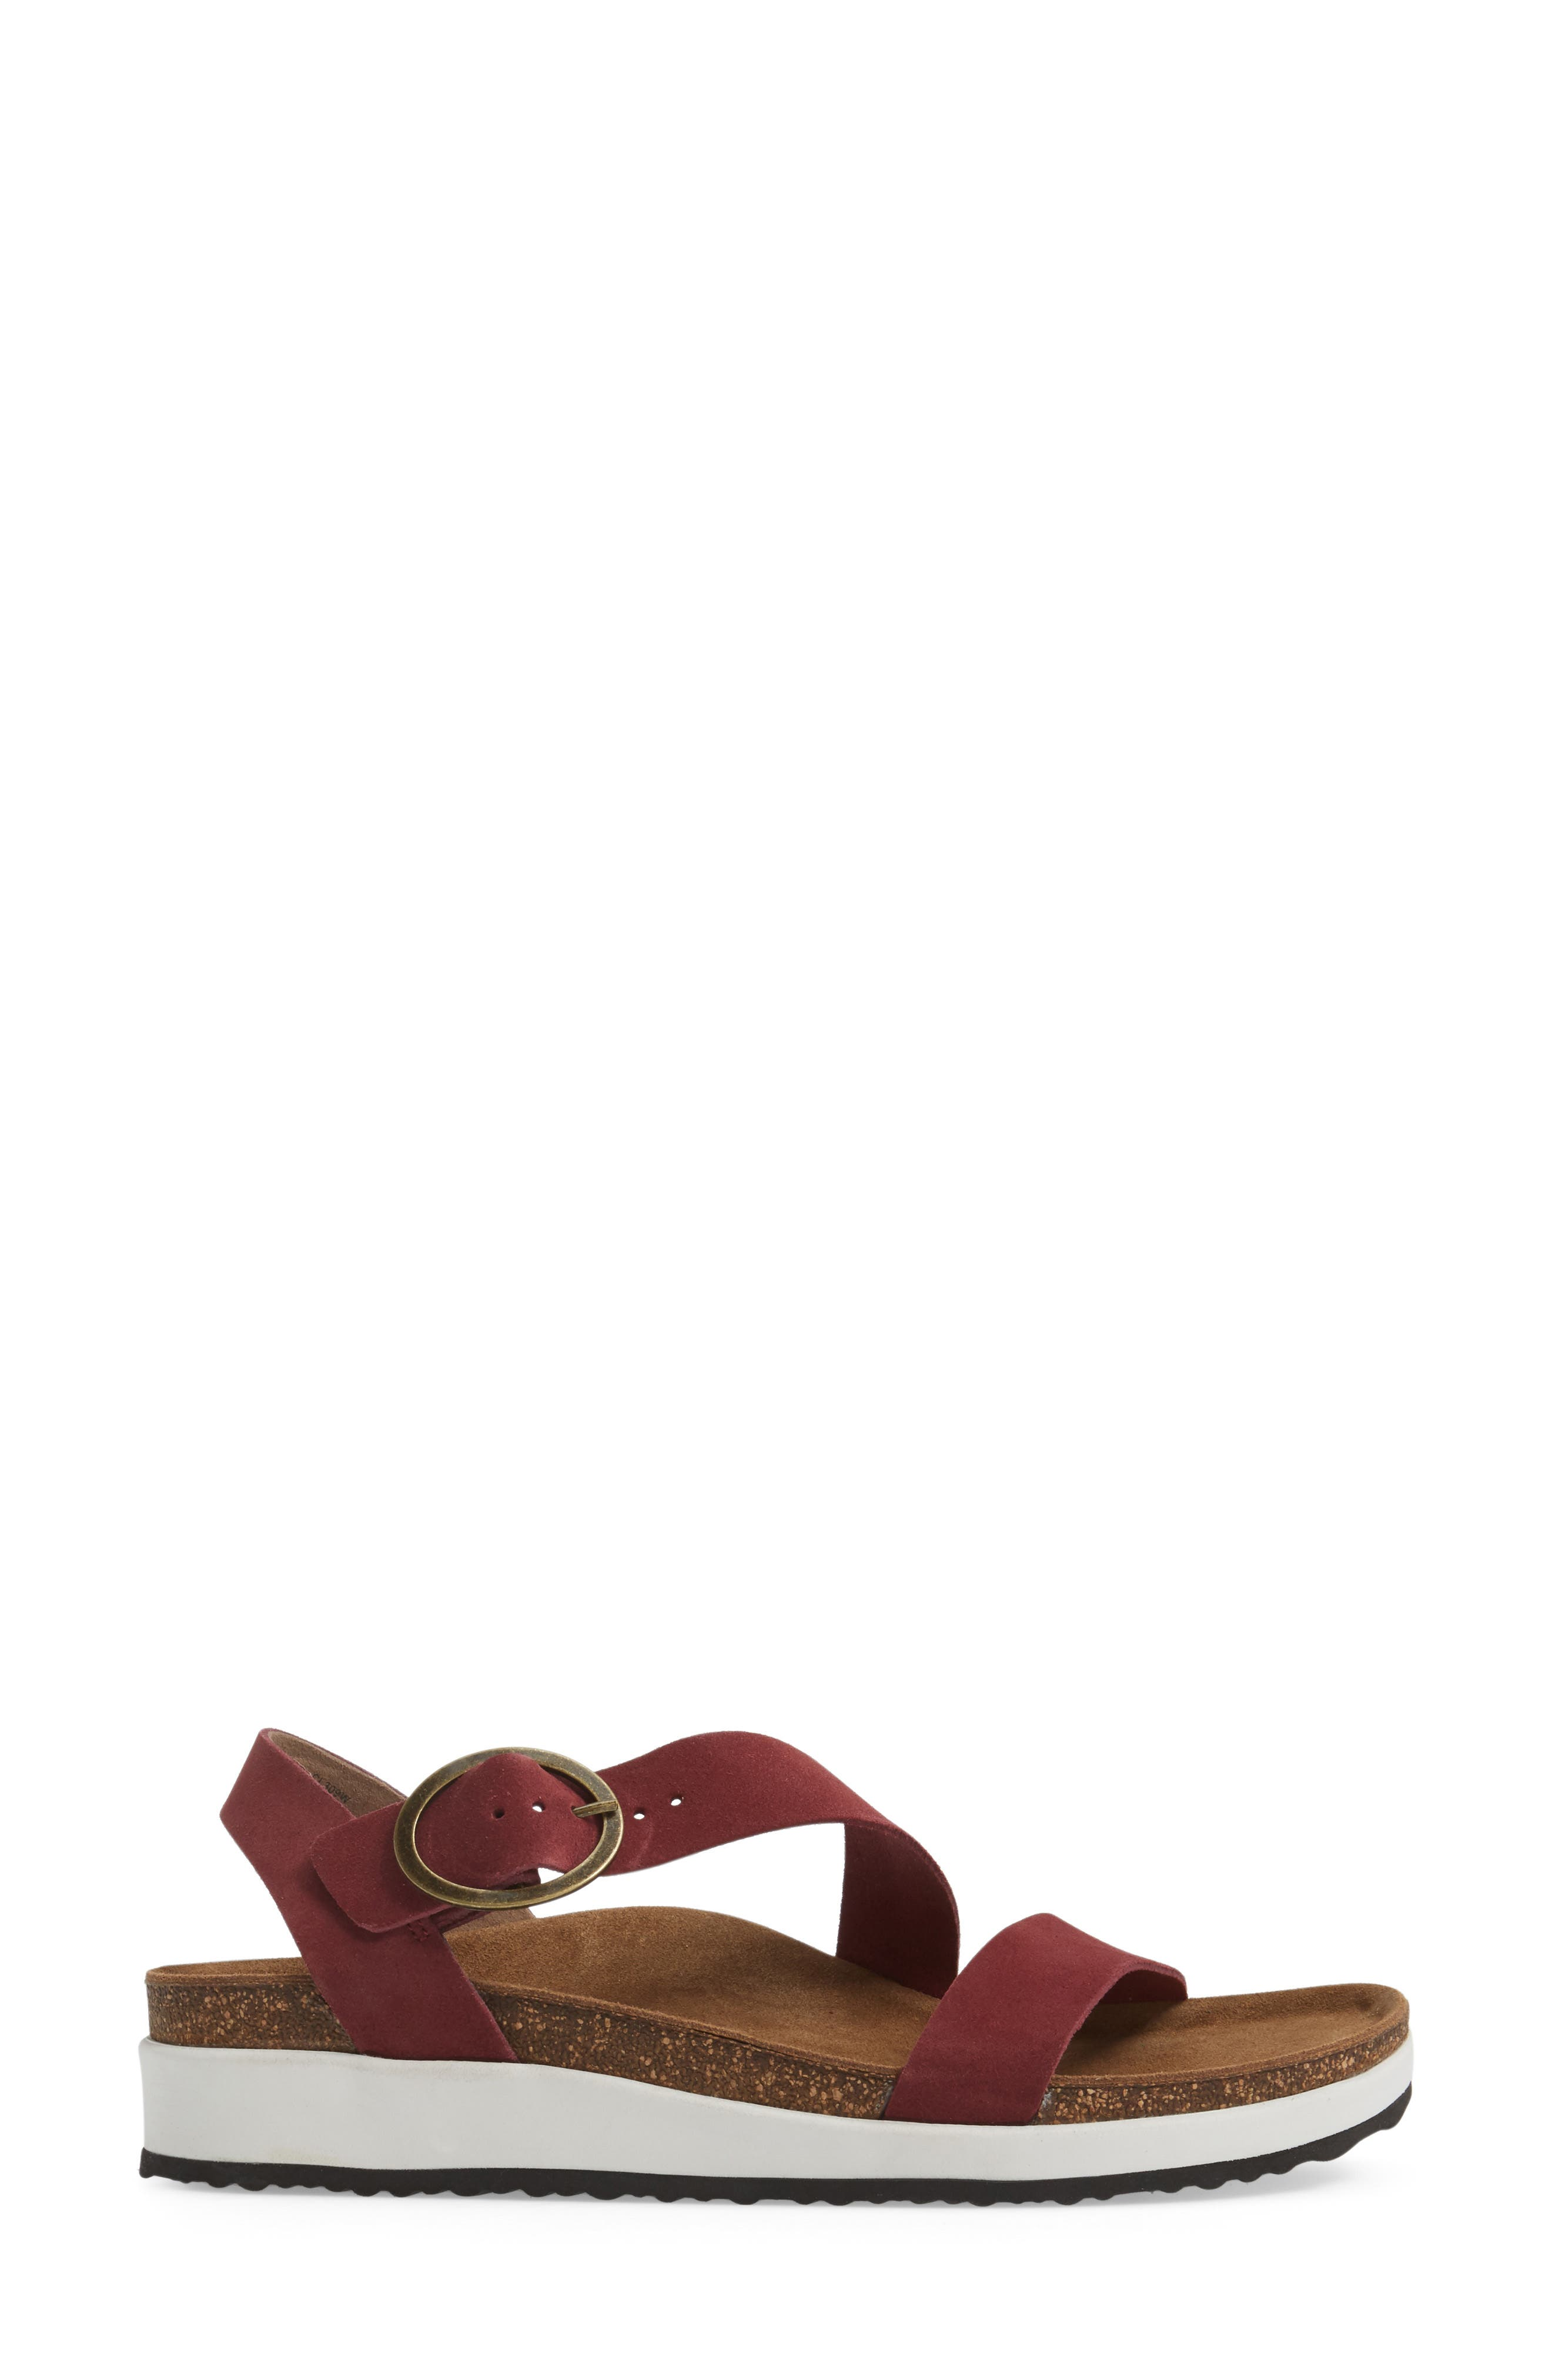 Adrianna Sandal,                             Alternate thumbnail 3, color,                             Maroon Suede